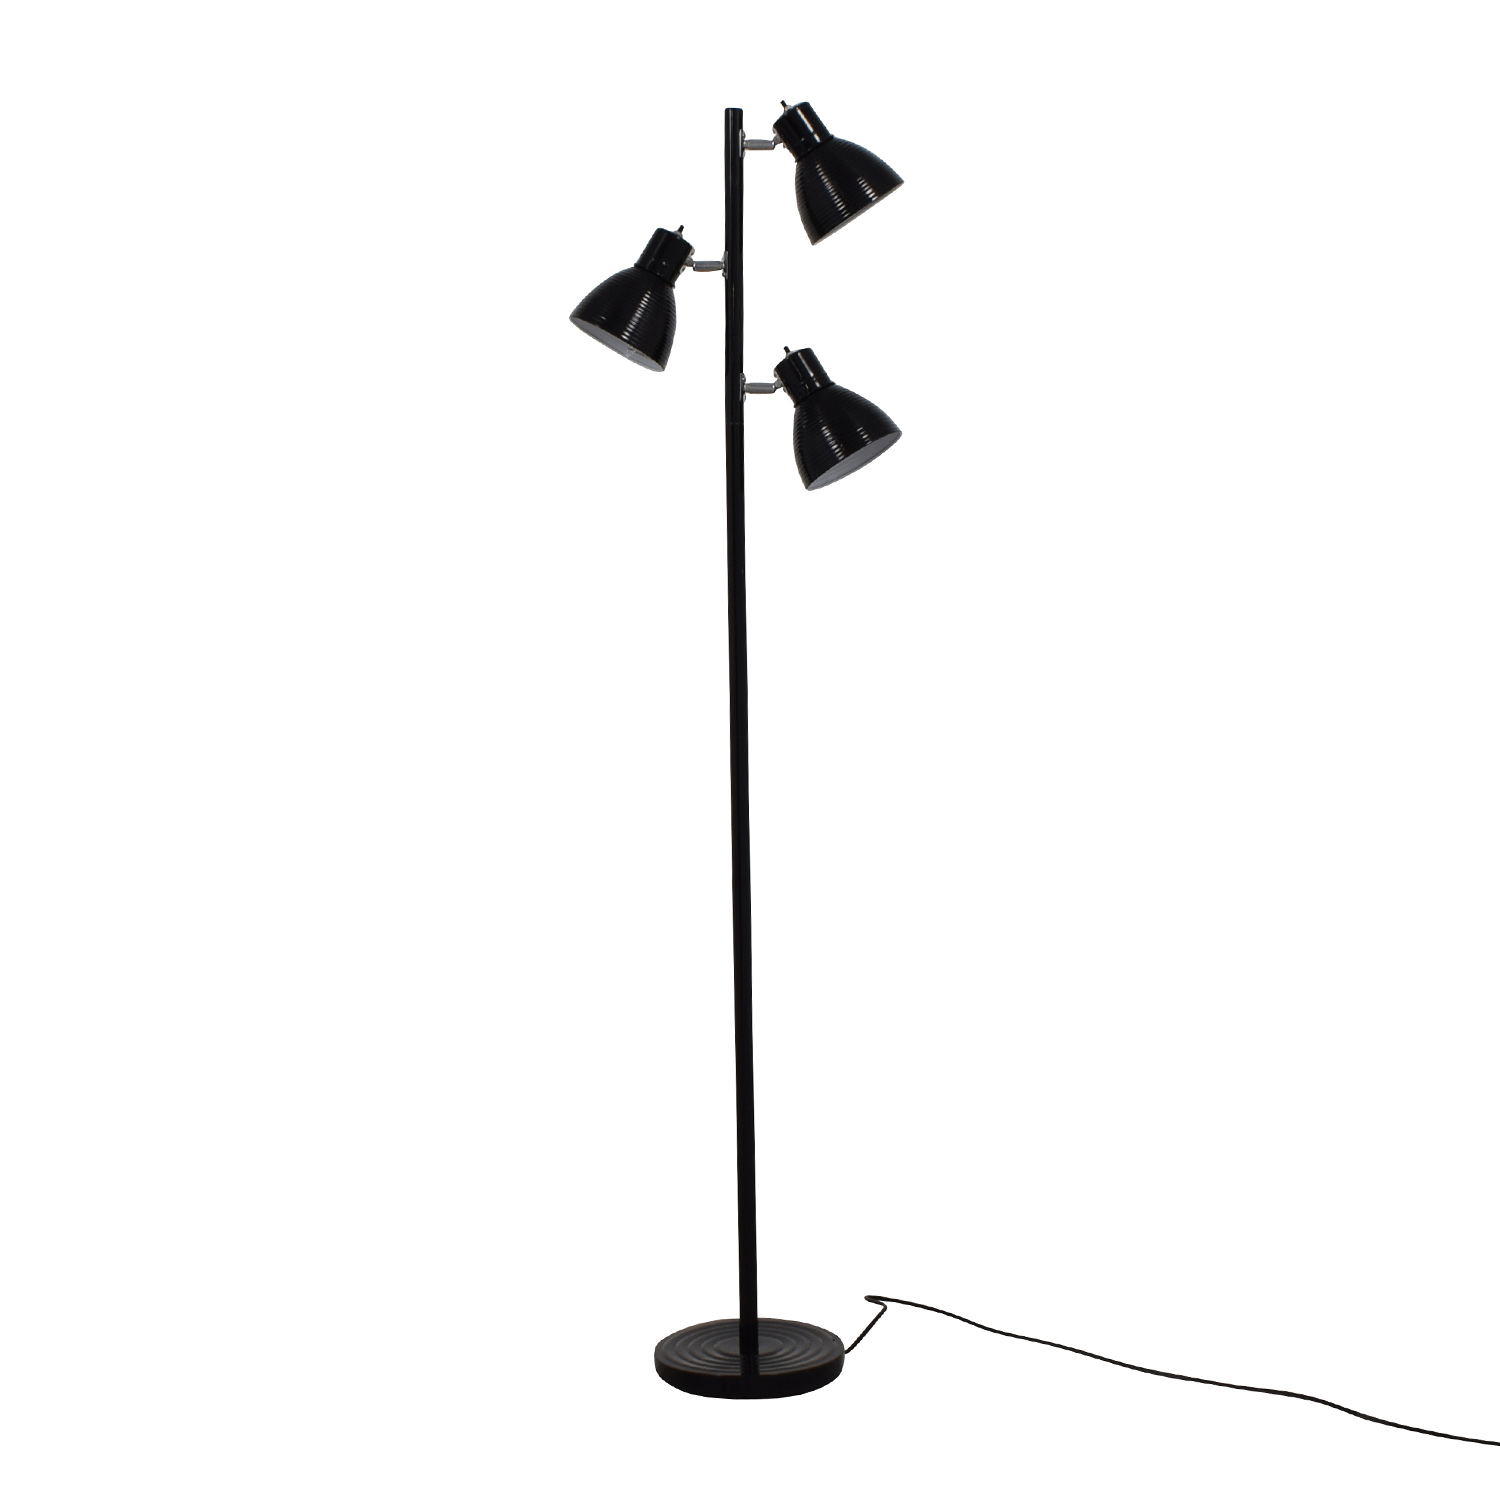 Black Standing Floor Lamp dimensions